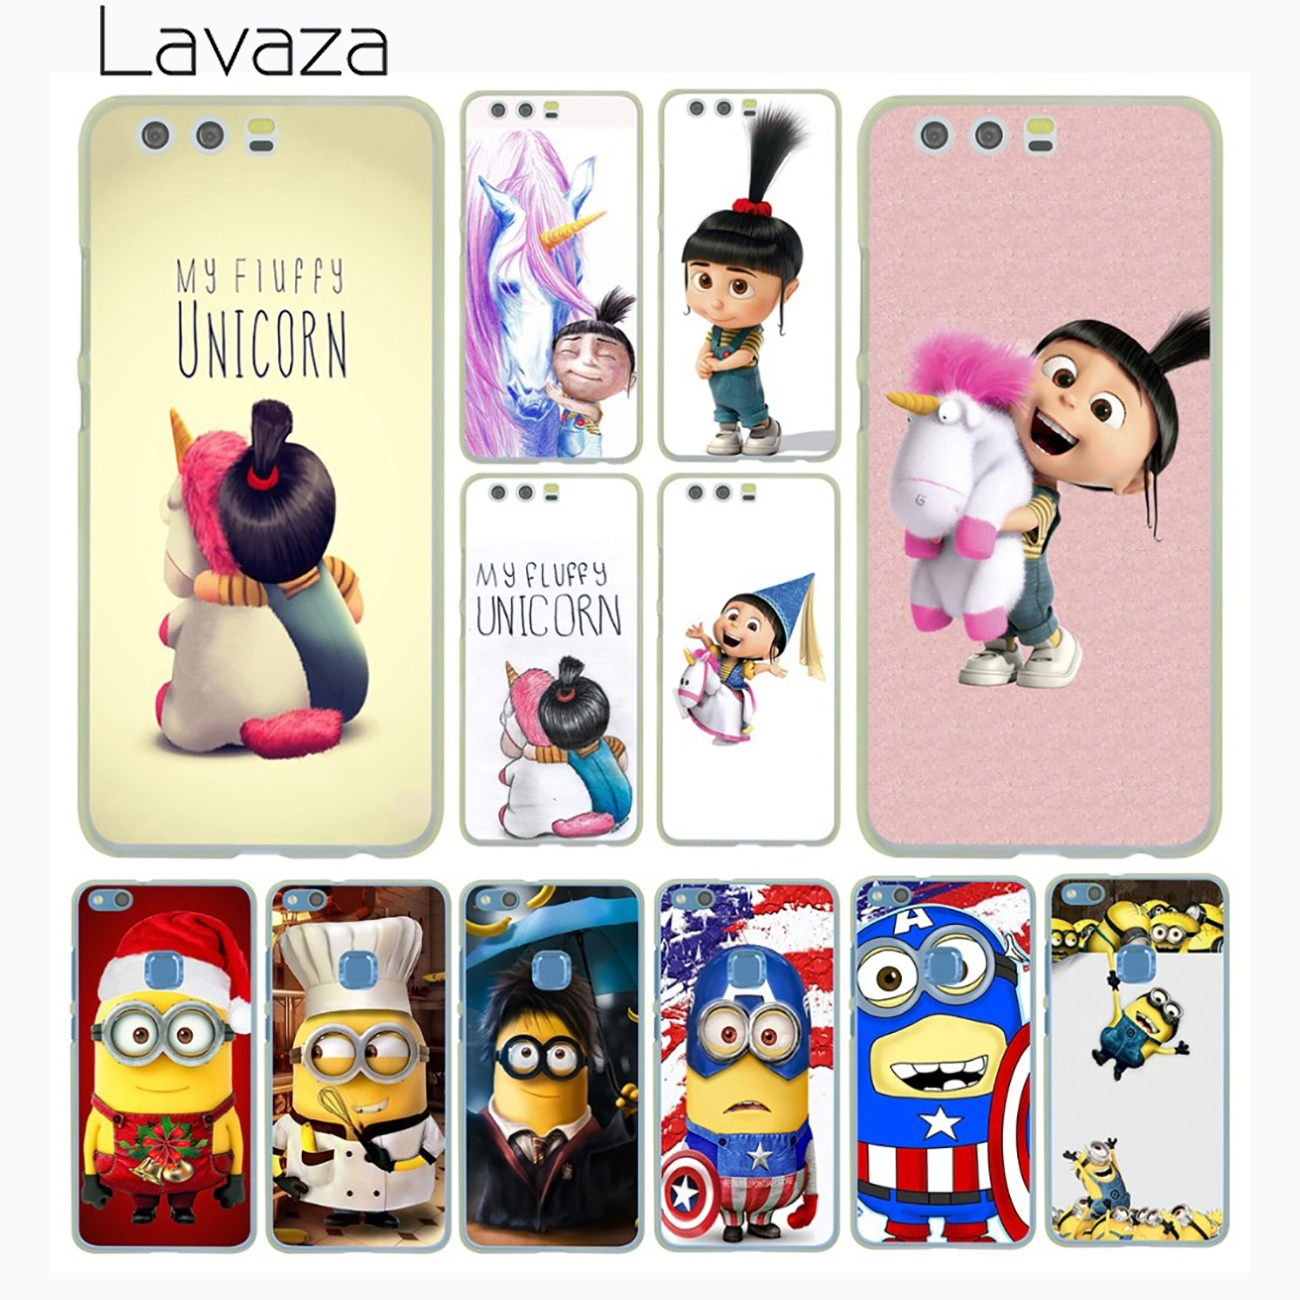 Lavaza Minions Minion My Unicorn Agnes Case for Huawei P20 P10 P9 Plus P8 Lite Mini 2015 2016 2017 P Smart Mate 9 10 Lite Pro ...